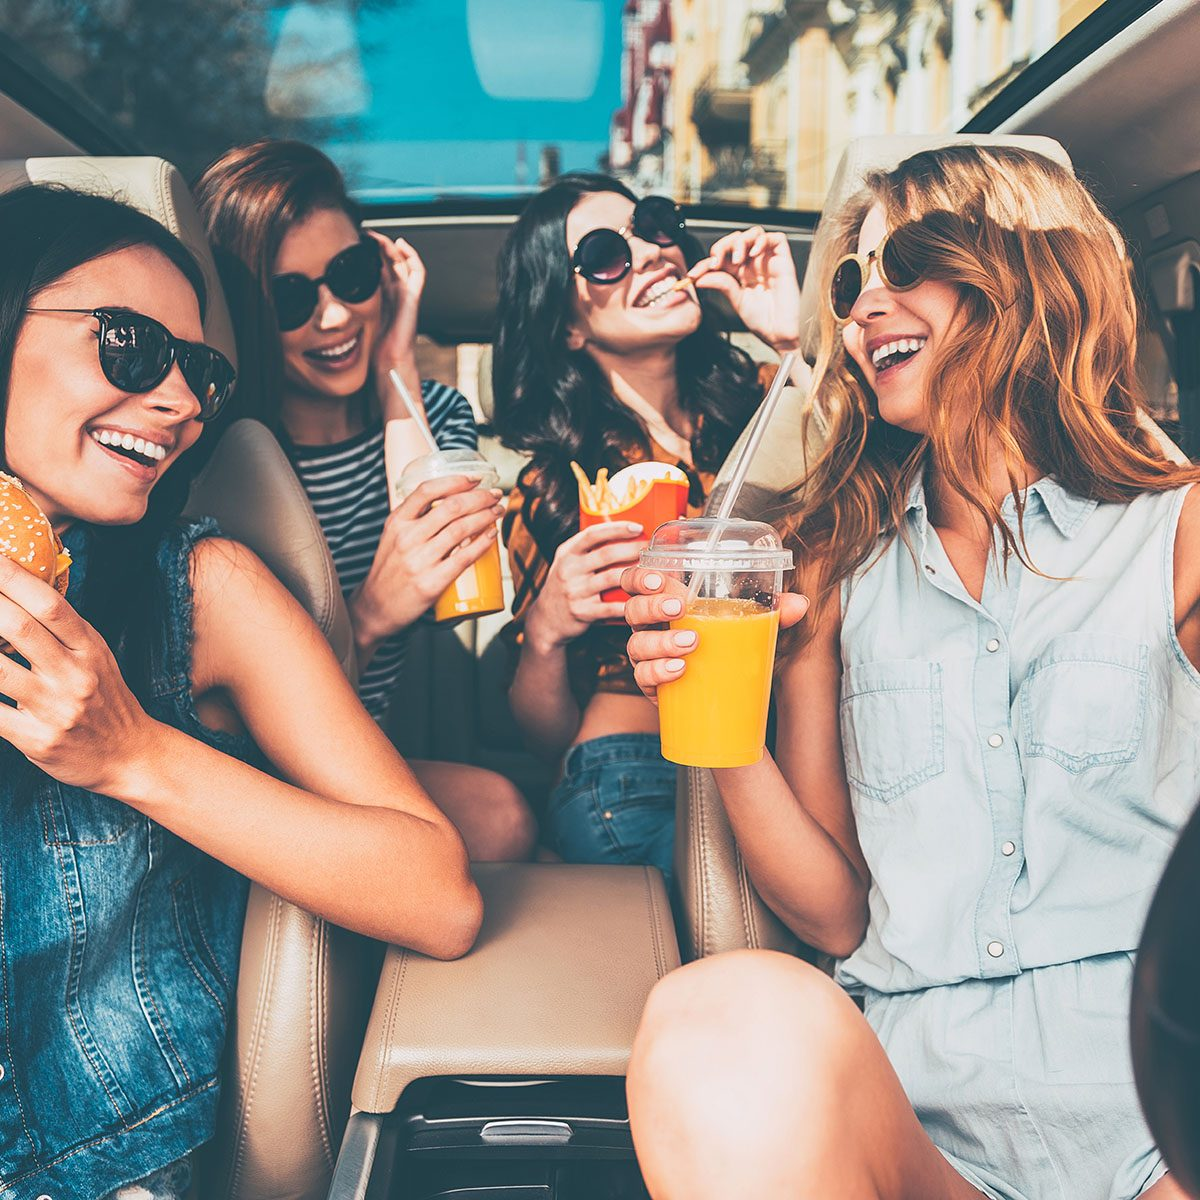 Enjoying their lunch in the car. Four beautiful young cheerful women looking at each other with smile and eating take out food while sitting in car